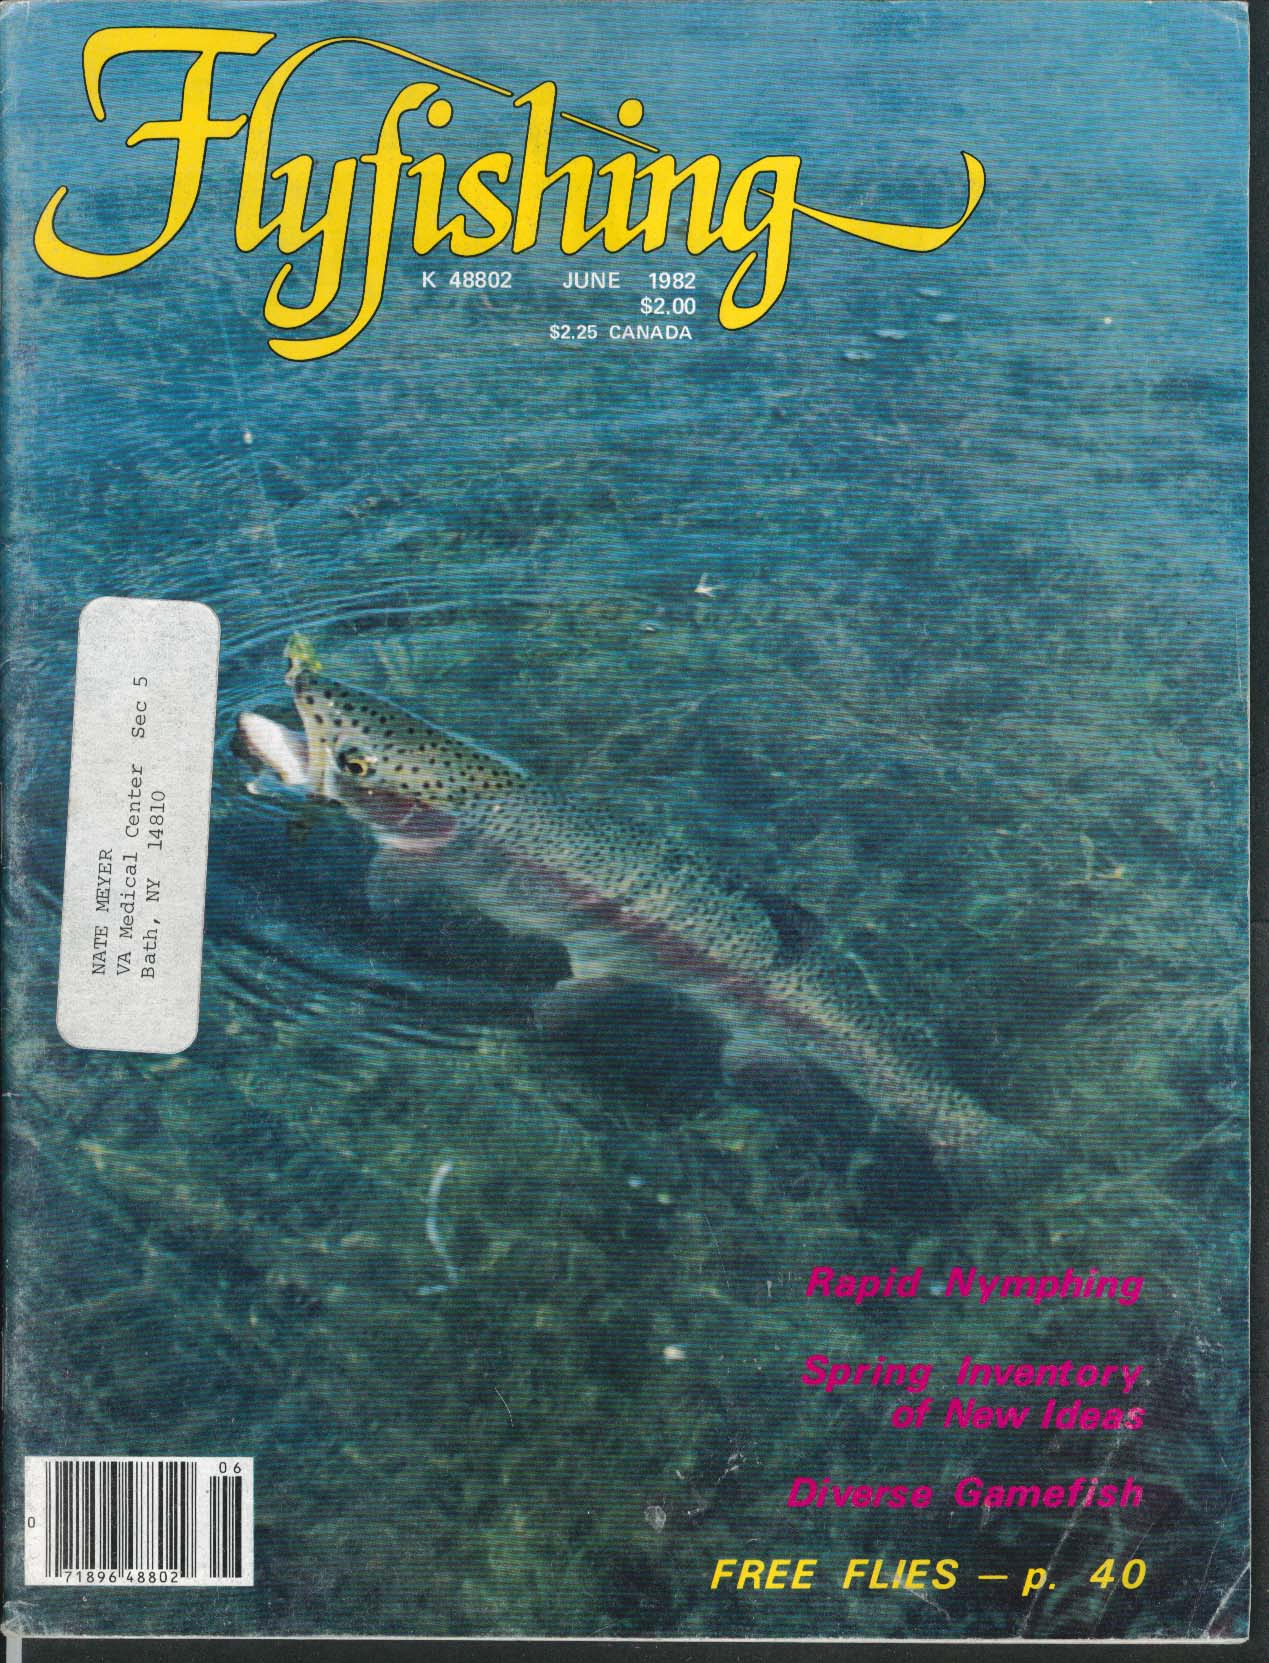 FLYFISHING Rapid Nymphing Gamefish Lochsa River 6 1982